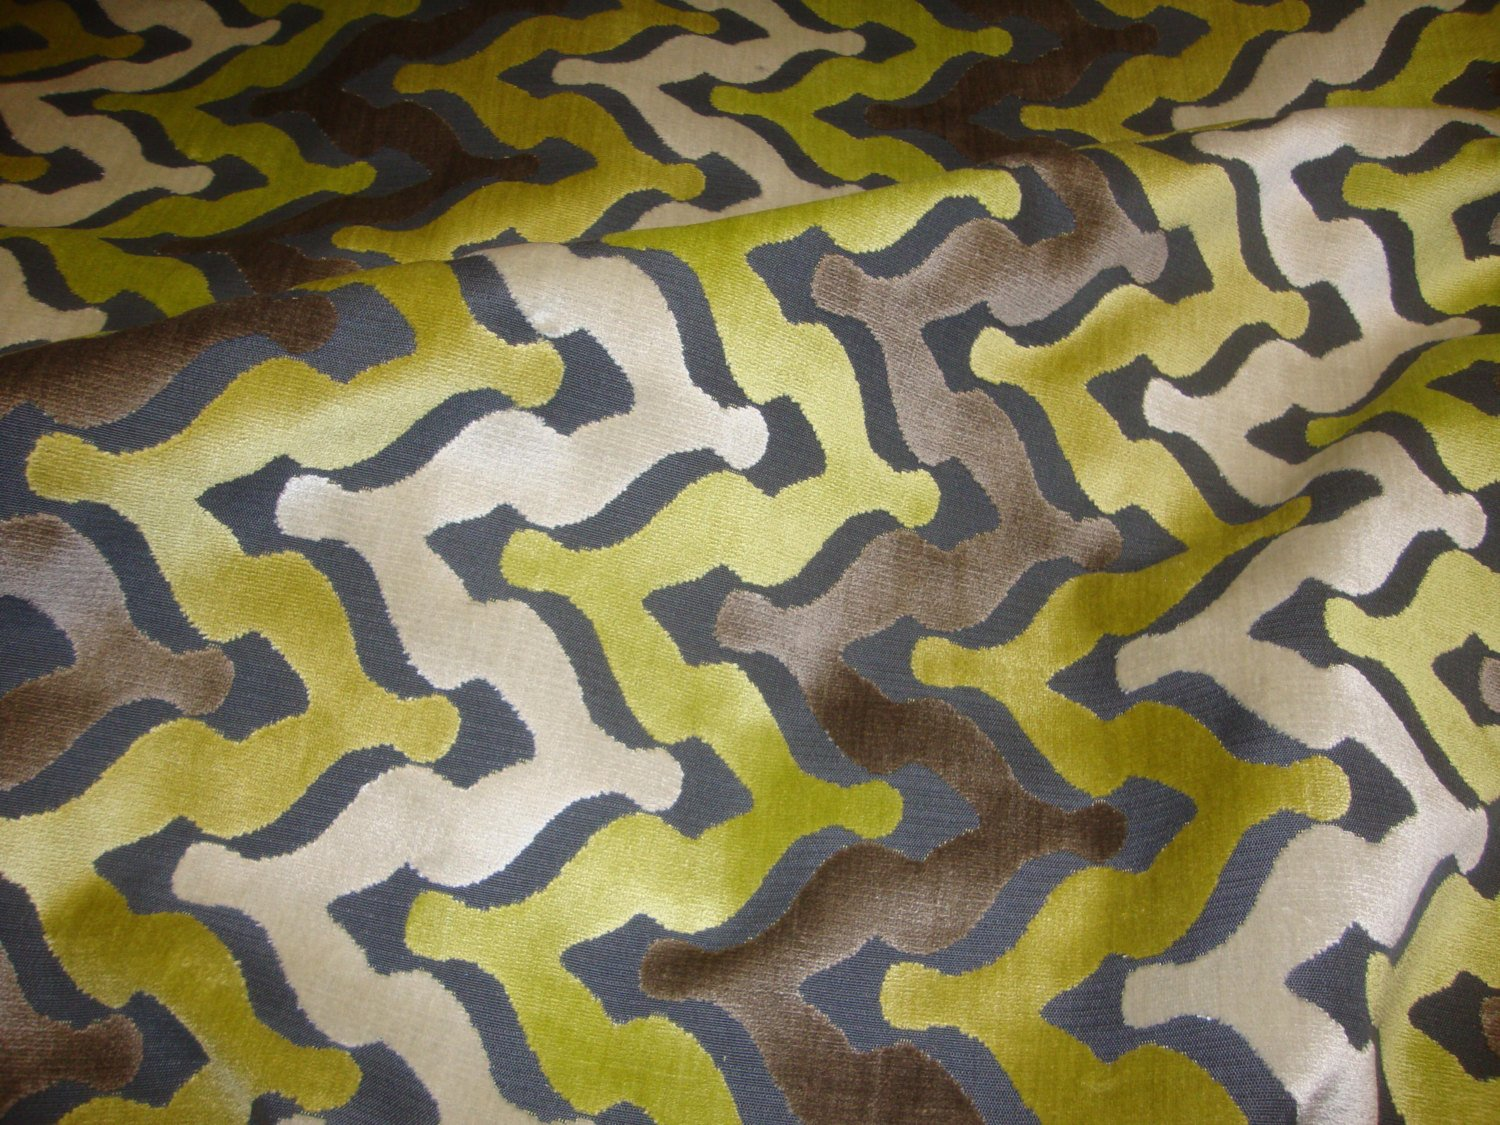 grass-wave-embossed-raised-velvet-55-56-wide-upholstery-fabric-by-the-yard